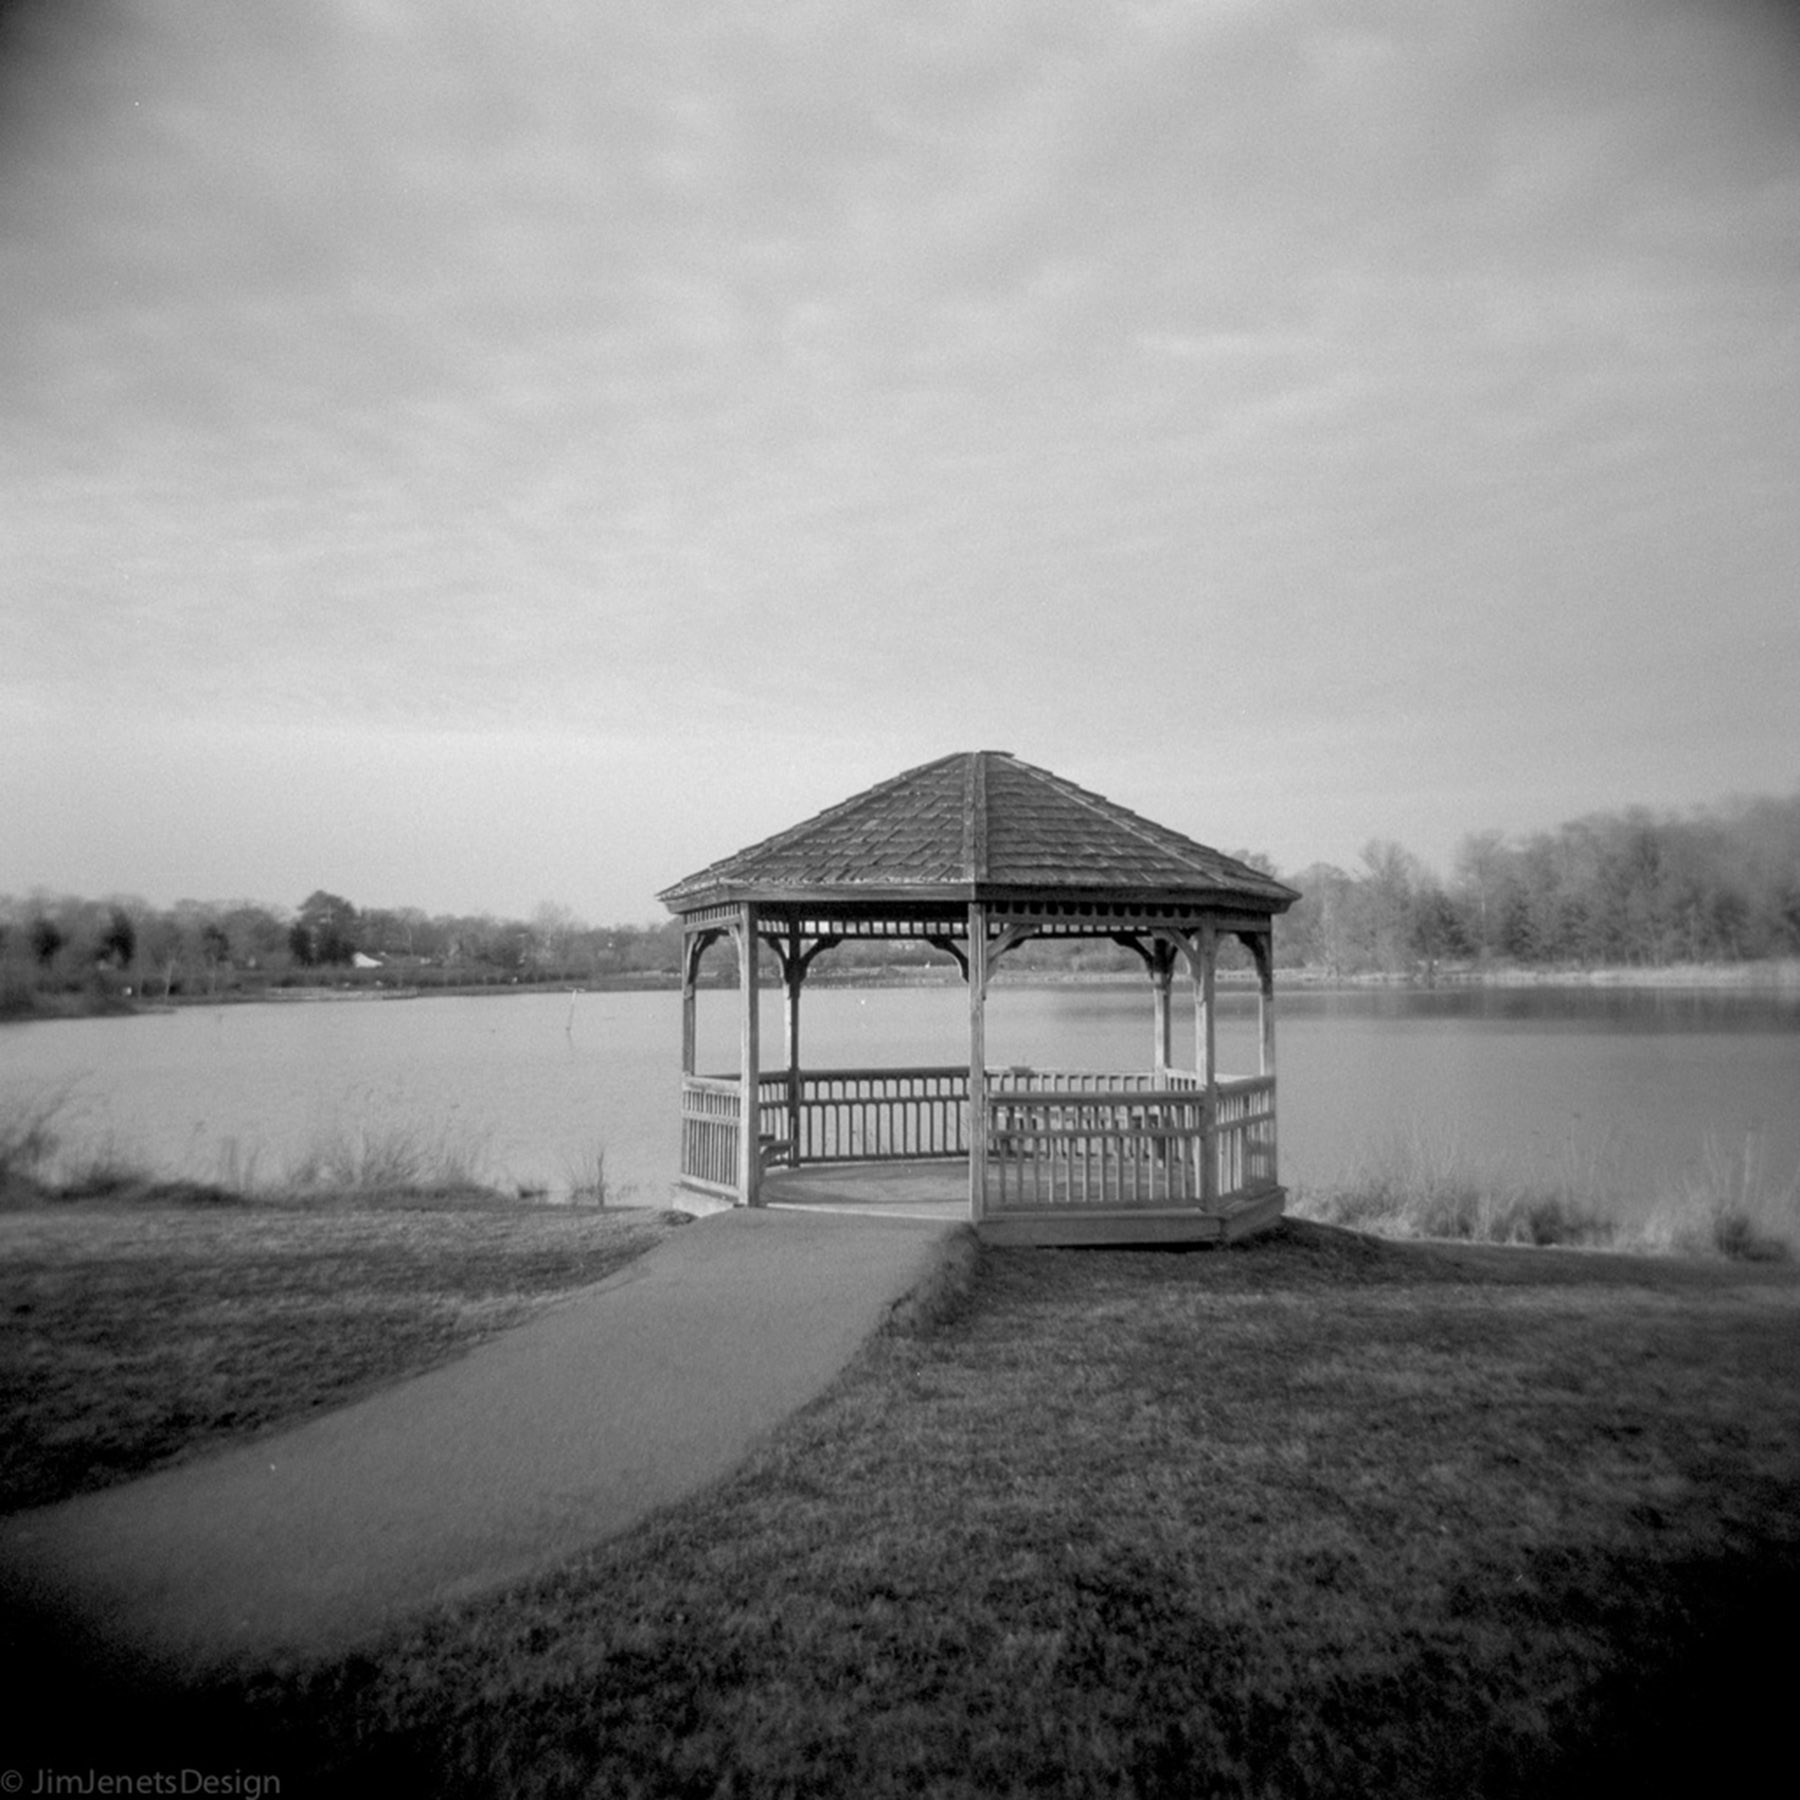 On The Lake | Holga 120N | Jim Jenets